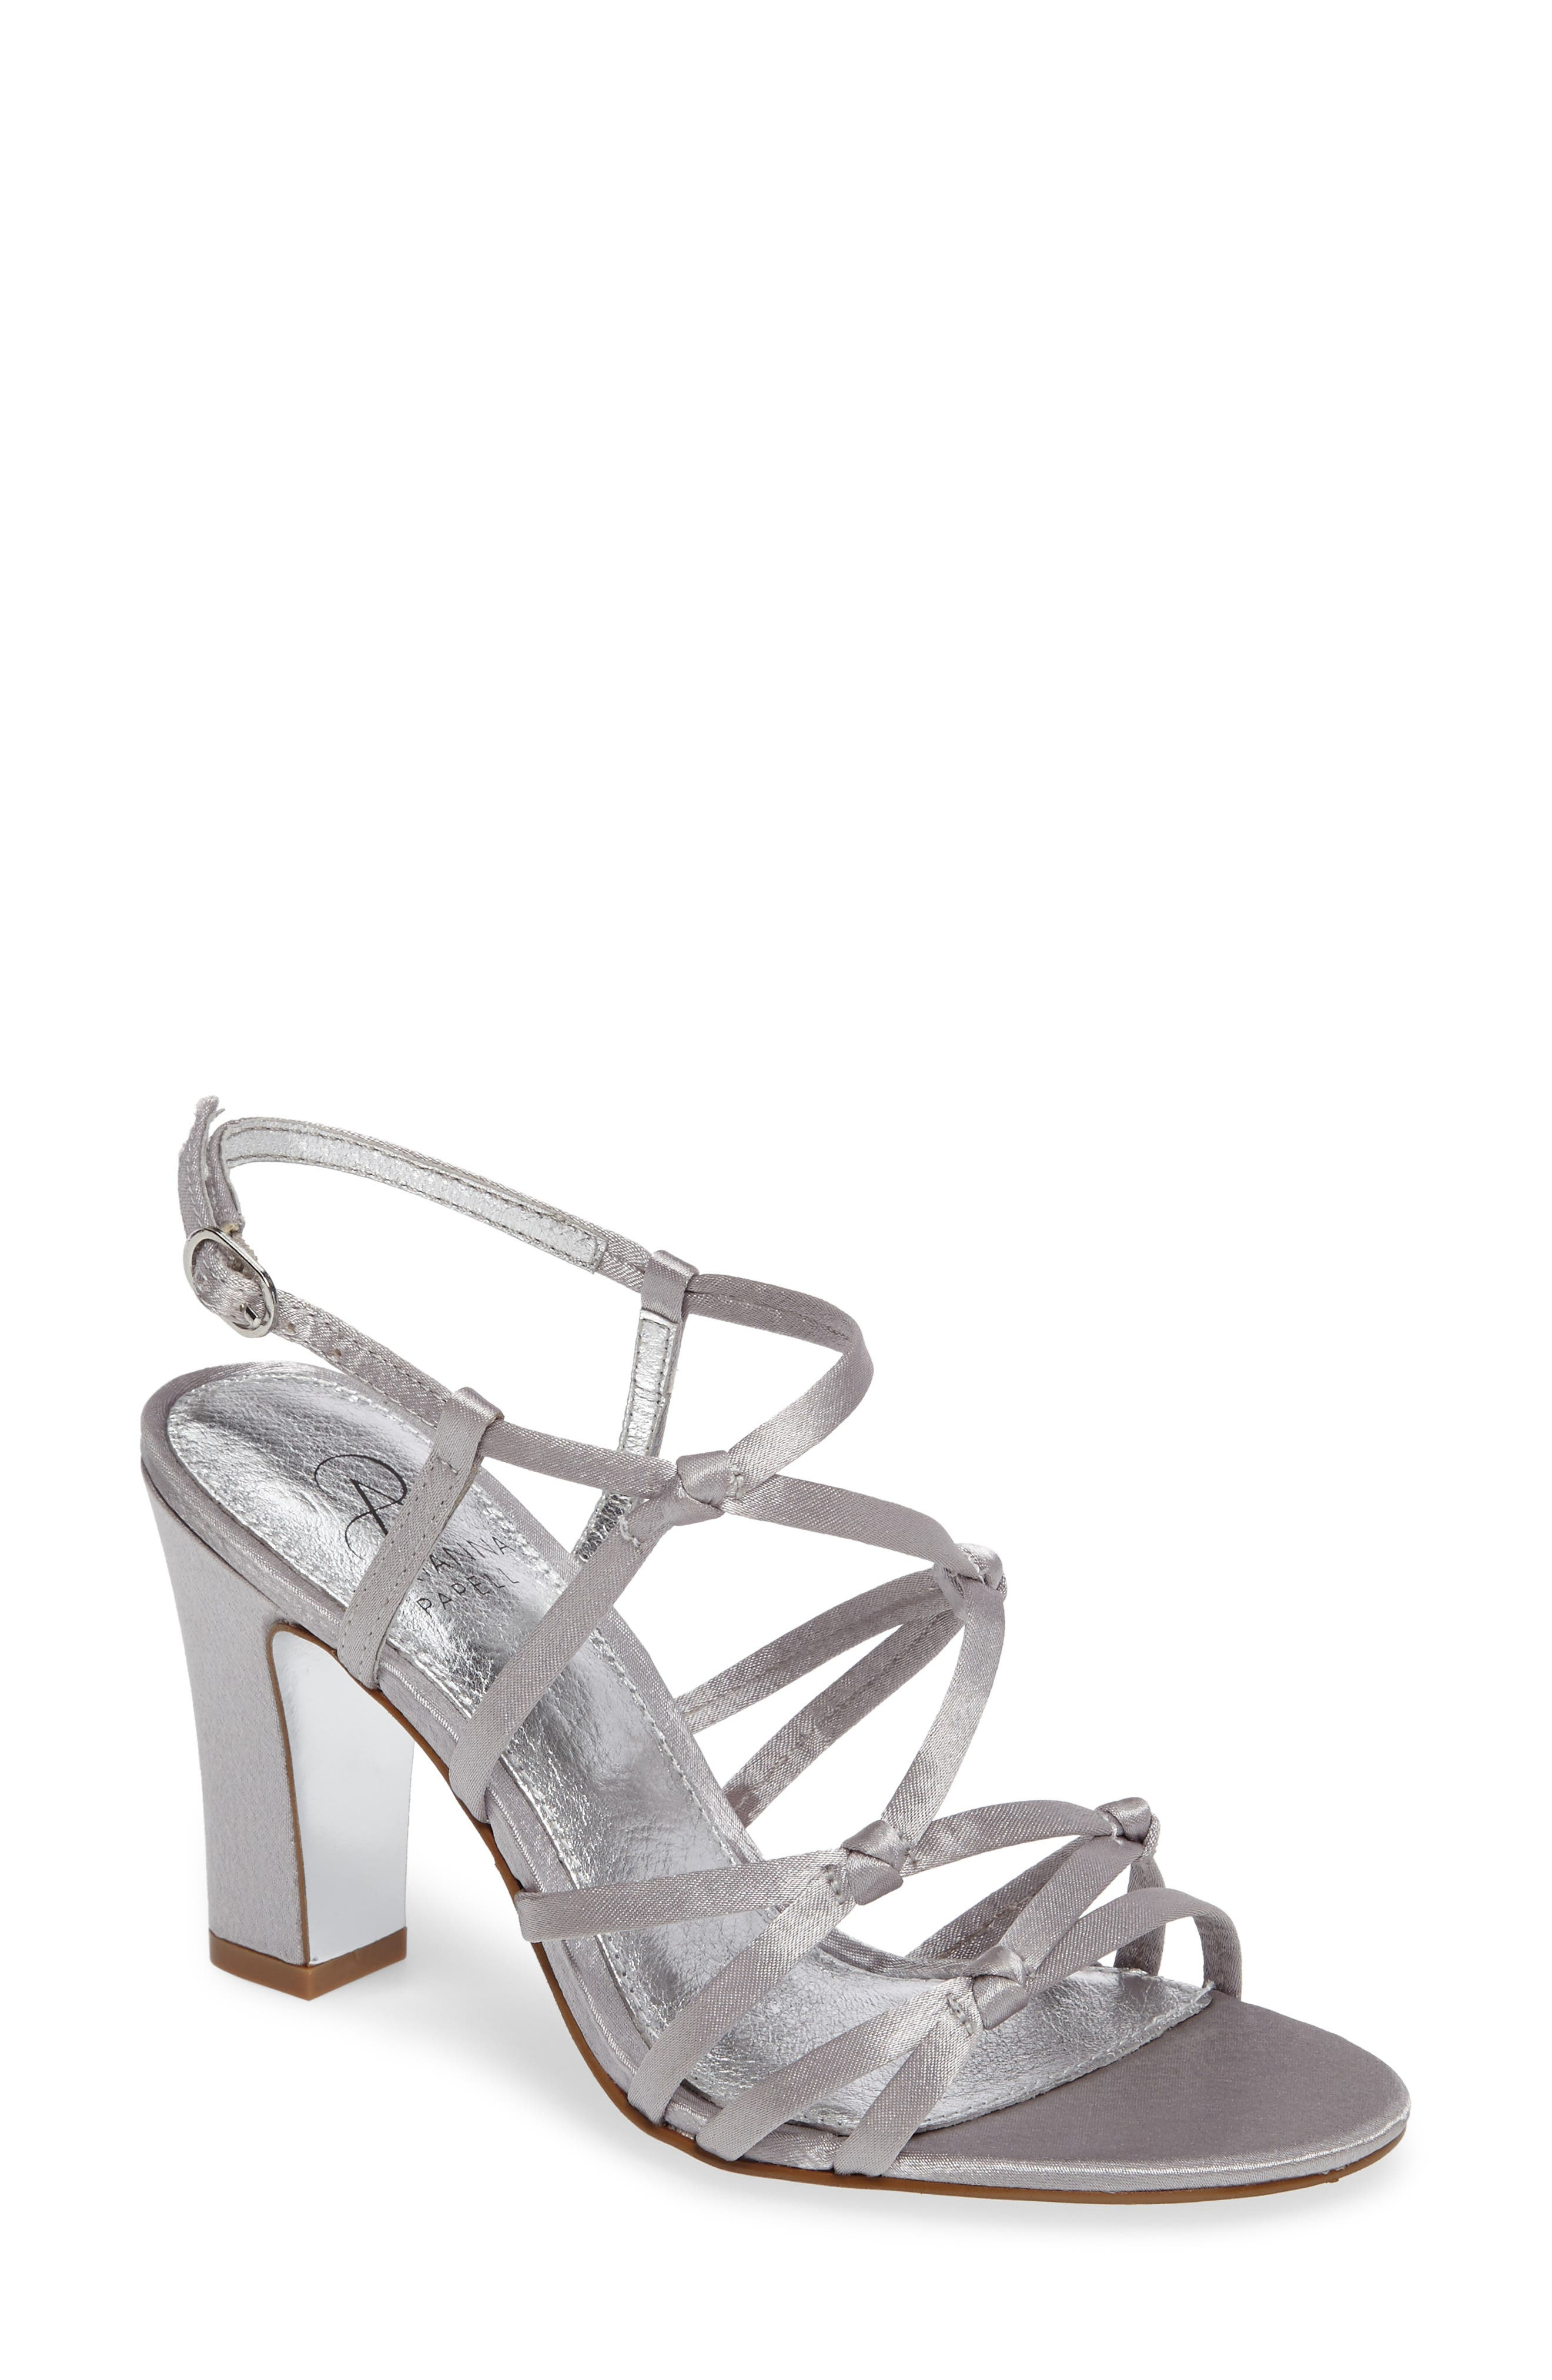 Adrianna Papell Adelson Knotted Strappy Sandal (Women)